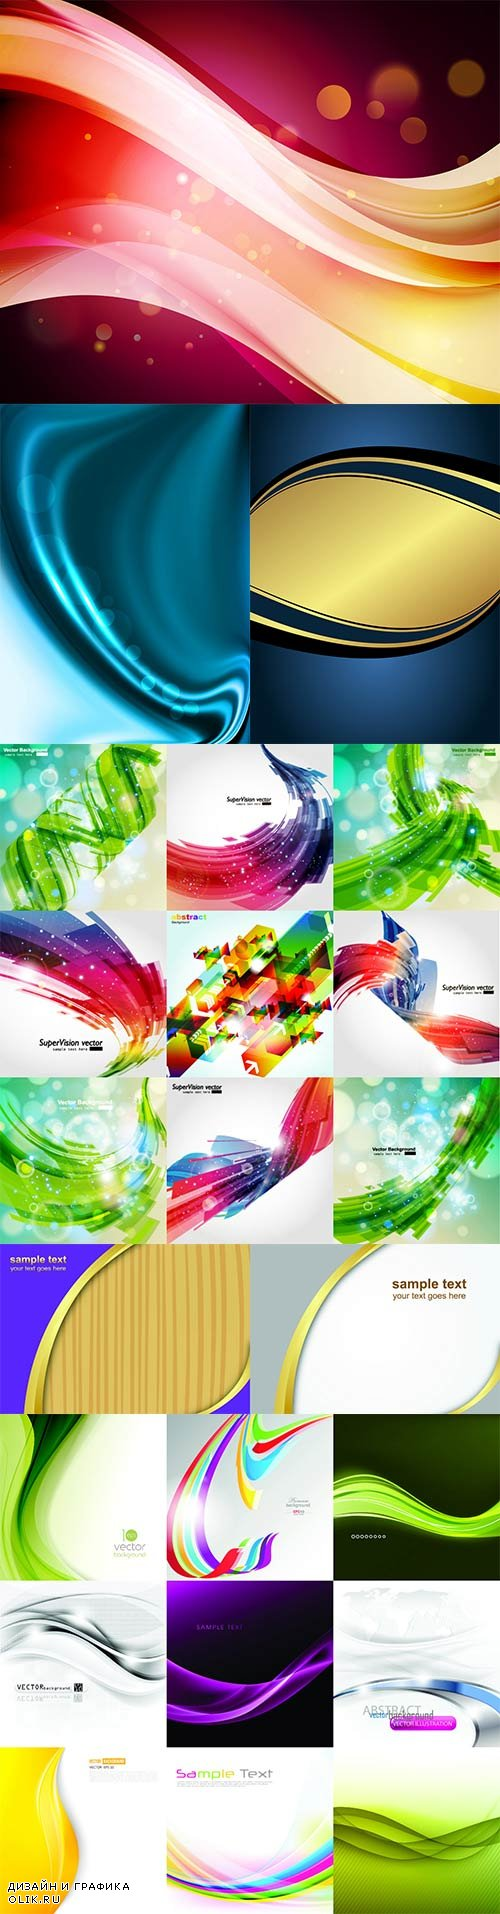 Bright colorful abstract backgrounds vector - 86